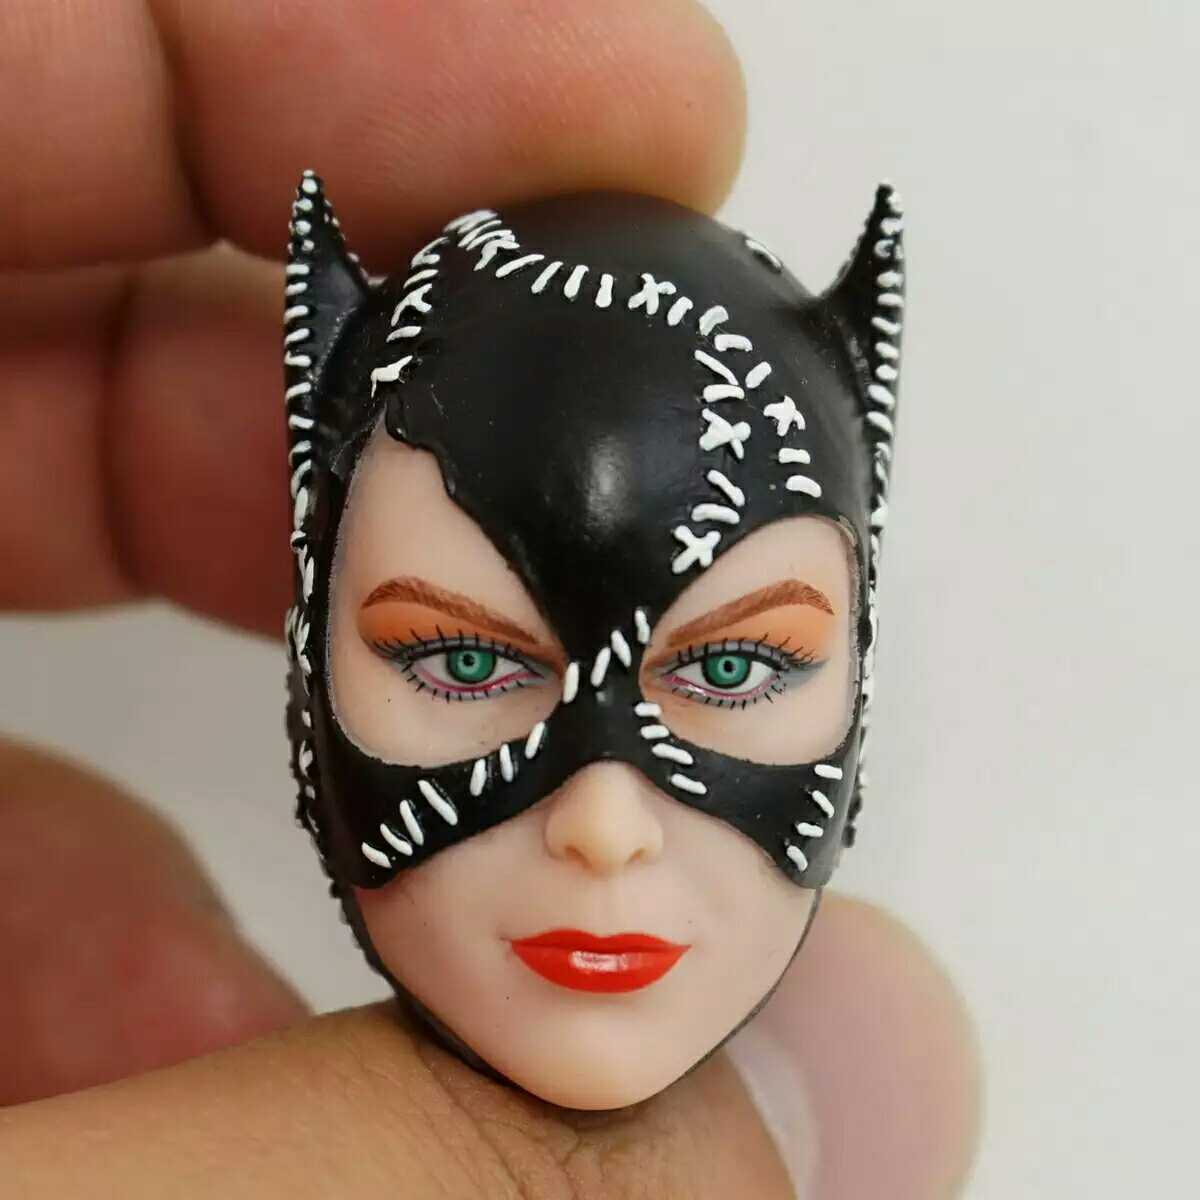 1 6 Catwomen Head Sculpt with Black Mask DIY Models for 12 Action Figures Bodies